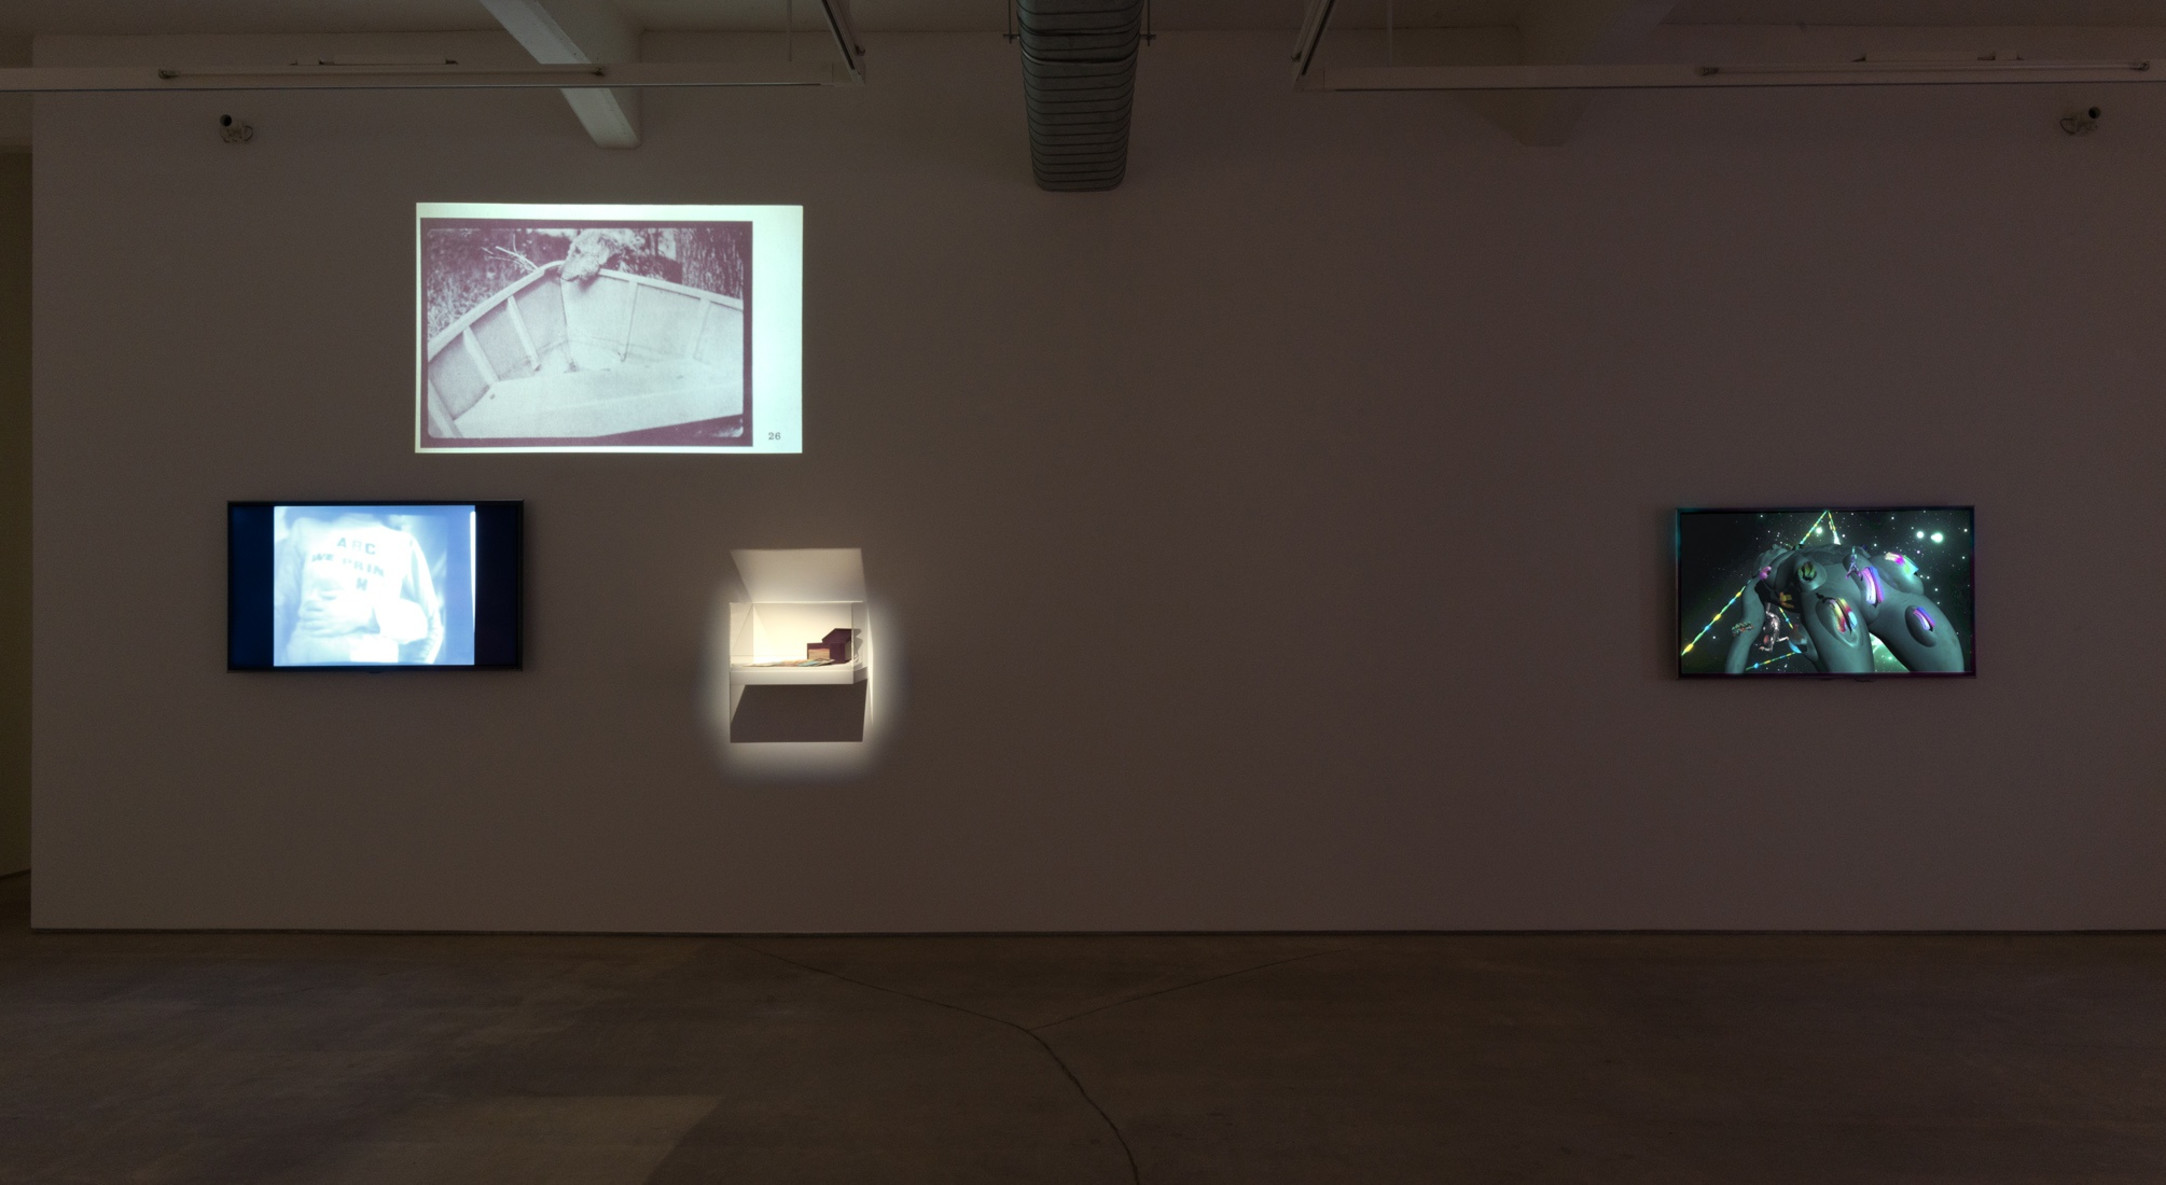 Installation view of Go Stand Next to the Mountain, Derrick Adams, Elijah Burgher, Howardena Pindell, Hunter Reynolds, Jacolby Satterwhite, Carolee Schneemann, David Wojnarowicz, at Hales Gallery London, 2015